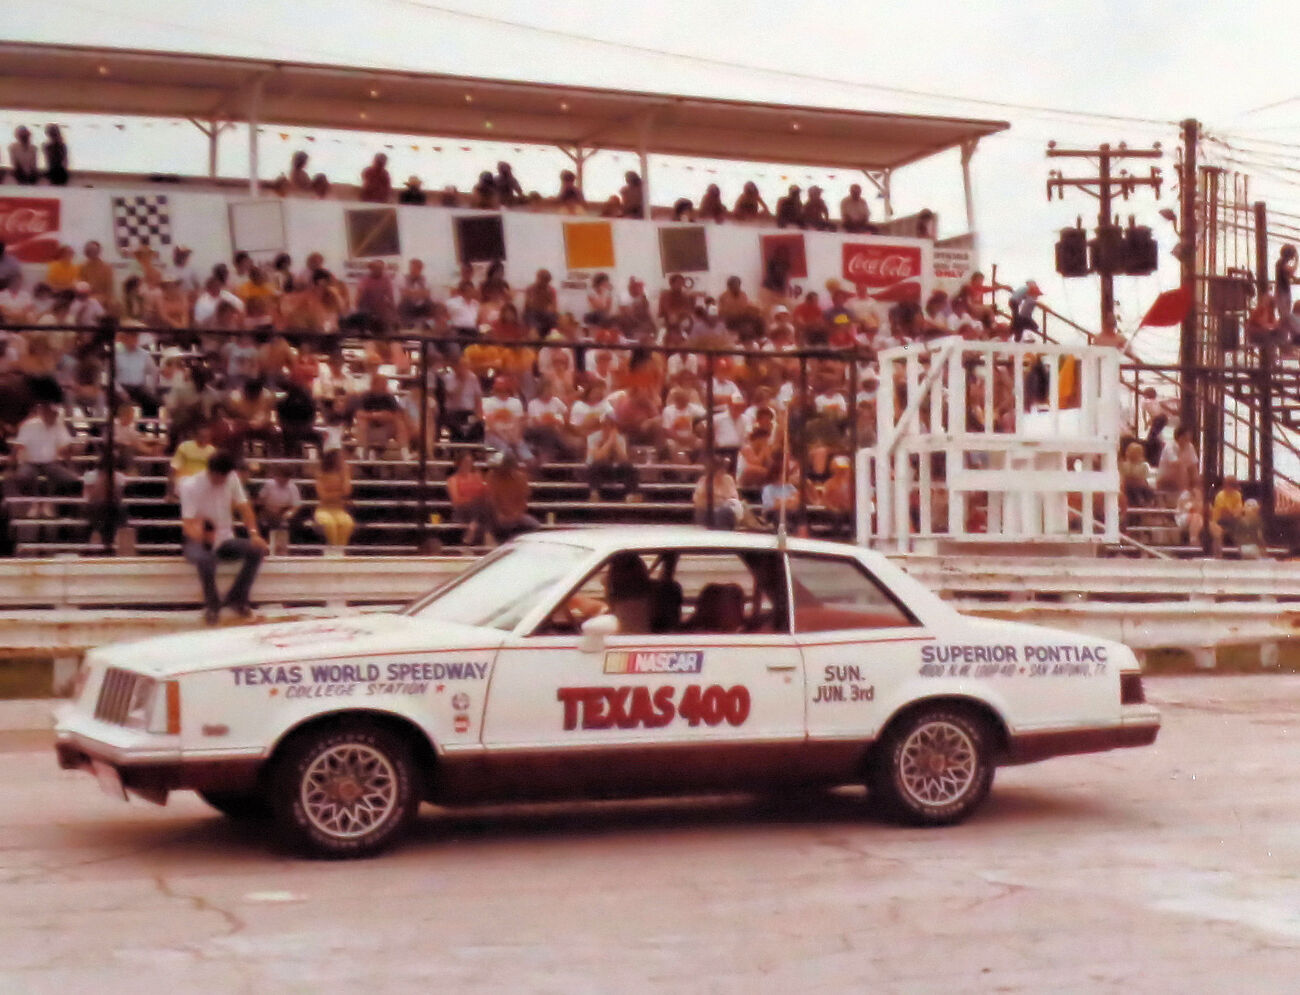 the pace car for the 400 mile race that day by Richardphotos